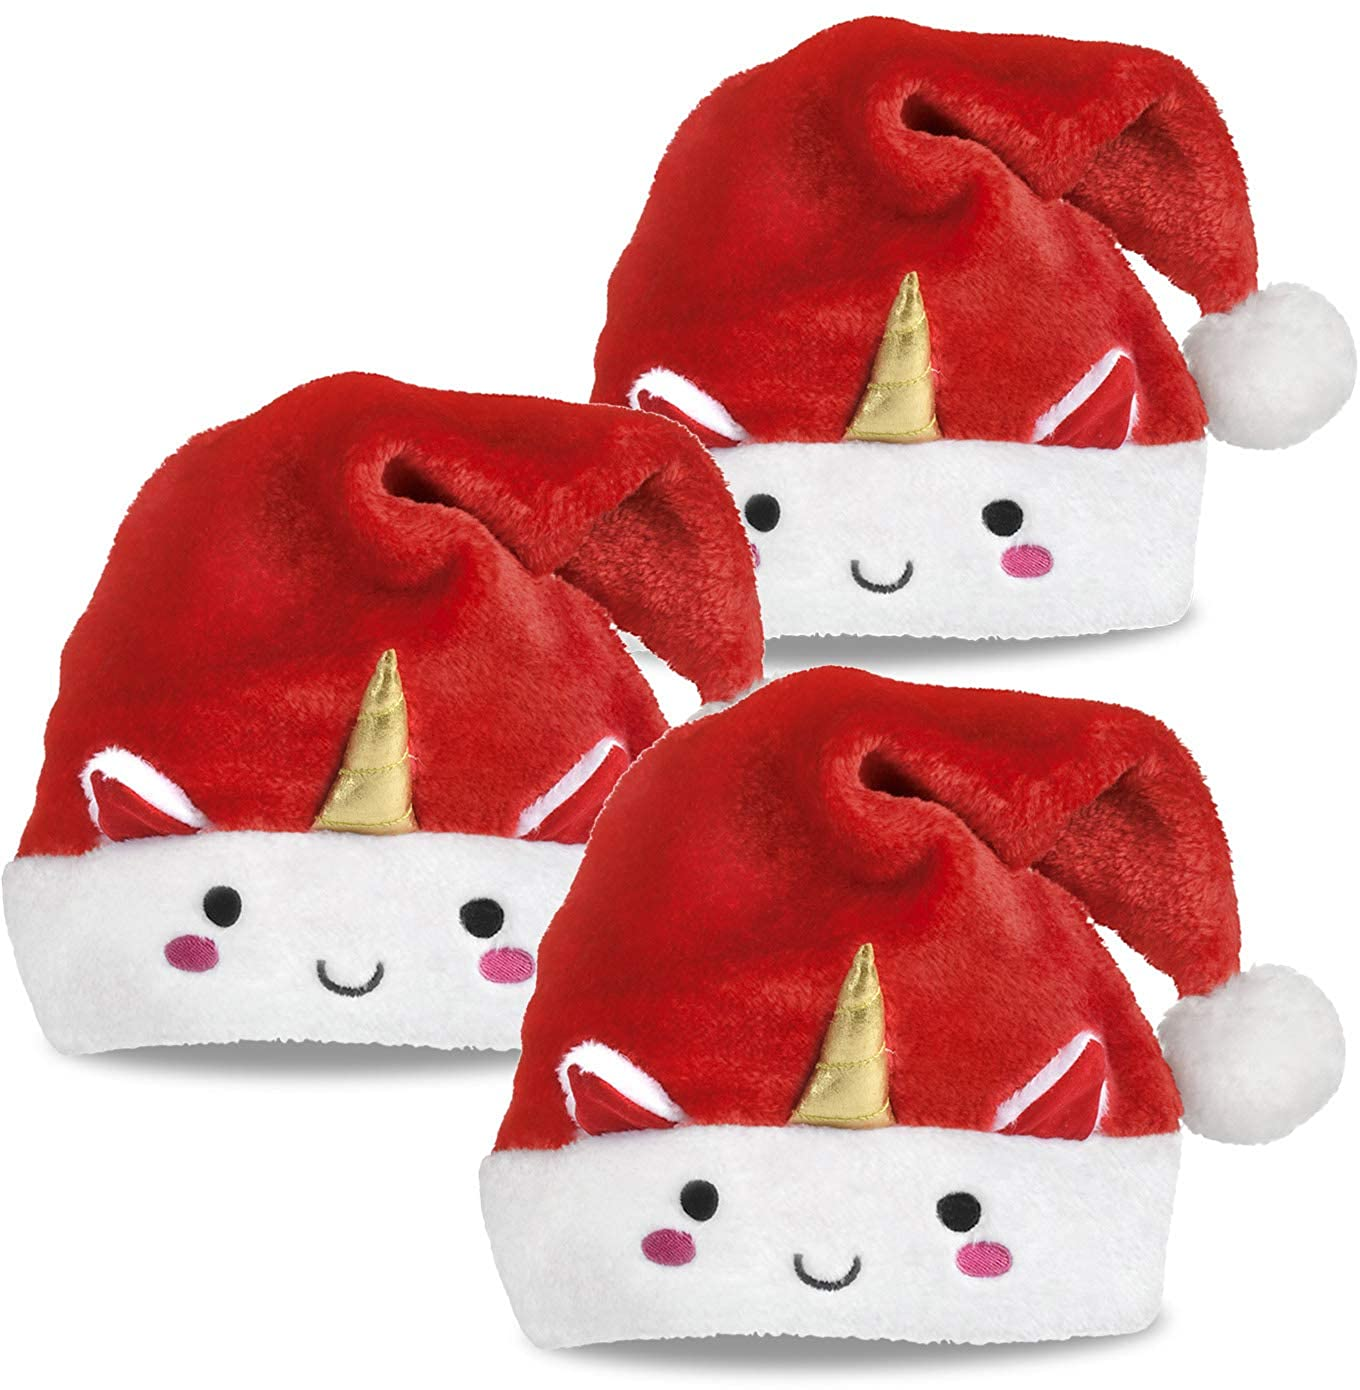 46b8fba017429 Amazon.com  Unicorn Santa Hat Christmas Santa Hats with Unicorn Horn and  Smile Face 3 Pack  Clothing